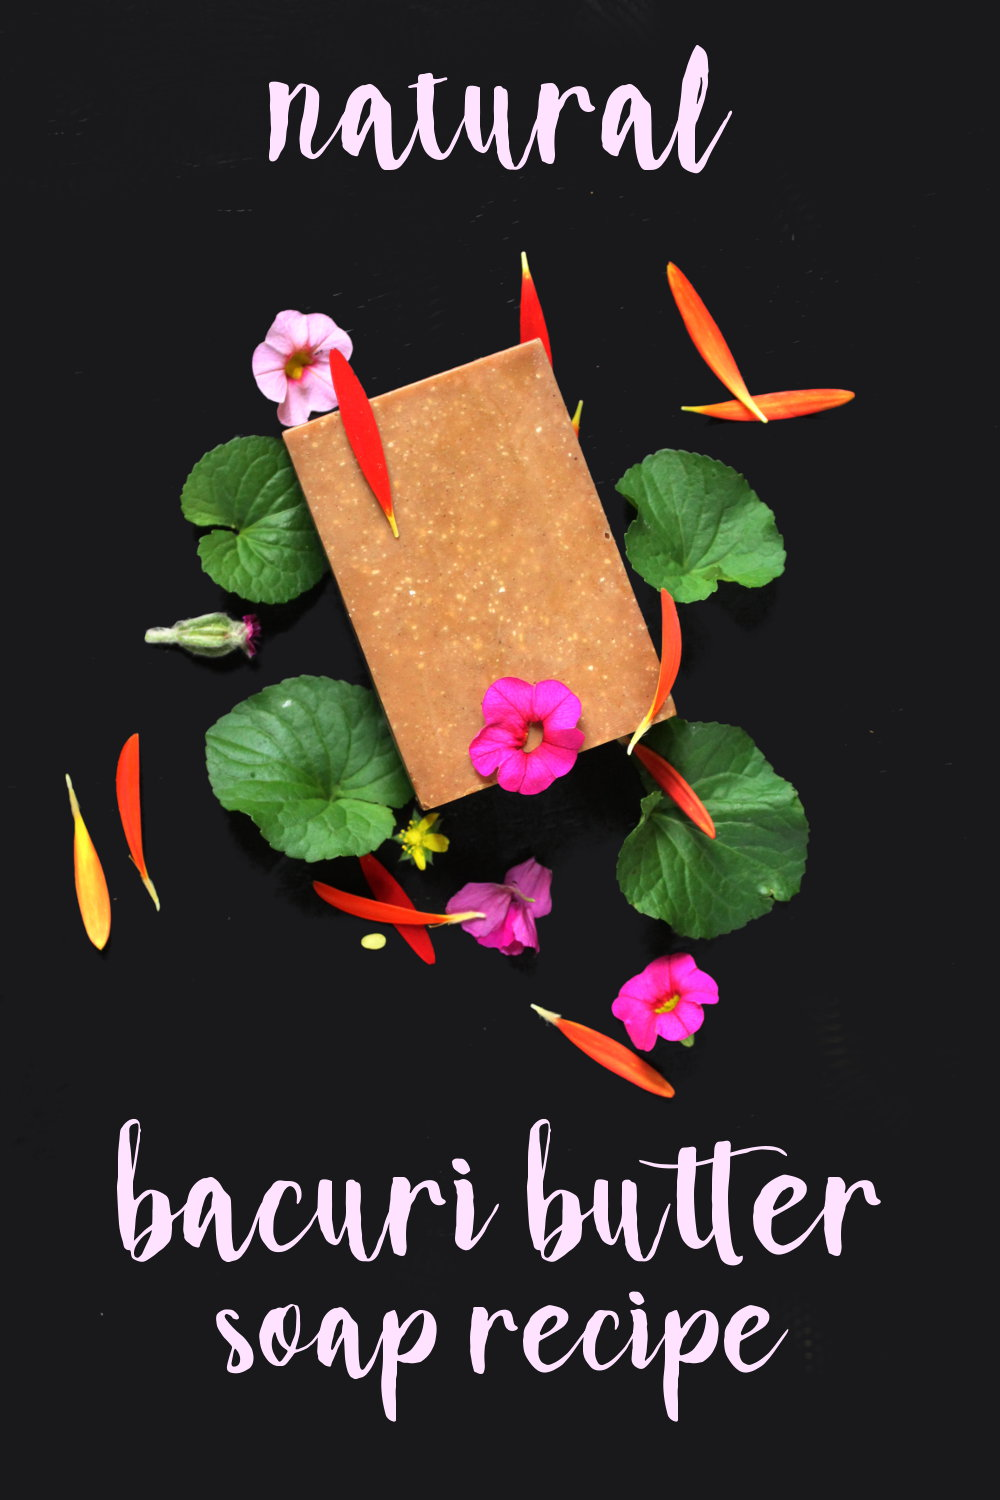 Natural Homemade Bacuri Butter & Murumuru Soap Recipe. This natural bacuri butter & murumuru soap recipe is the perfect soapmaking project for exploring new ways to use exotic ingredients in natural skin care recipes. Left unscented to allow the warm, natural earthy scent of bacuri butter to shine through, this handmade soap recipe is another must for your recipe file!